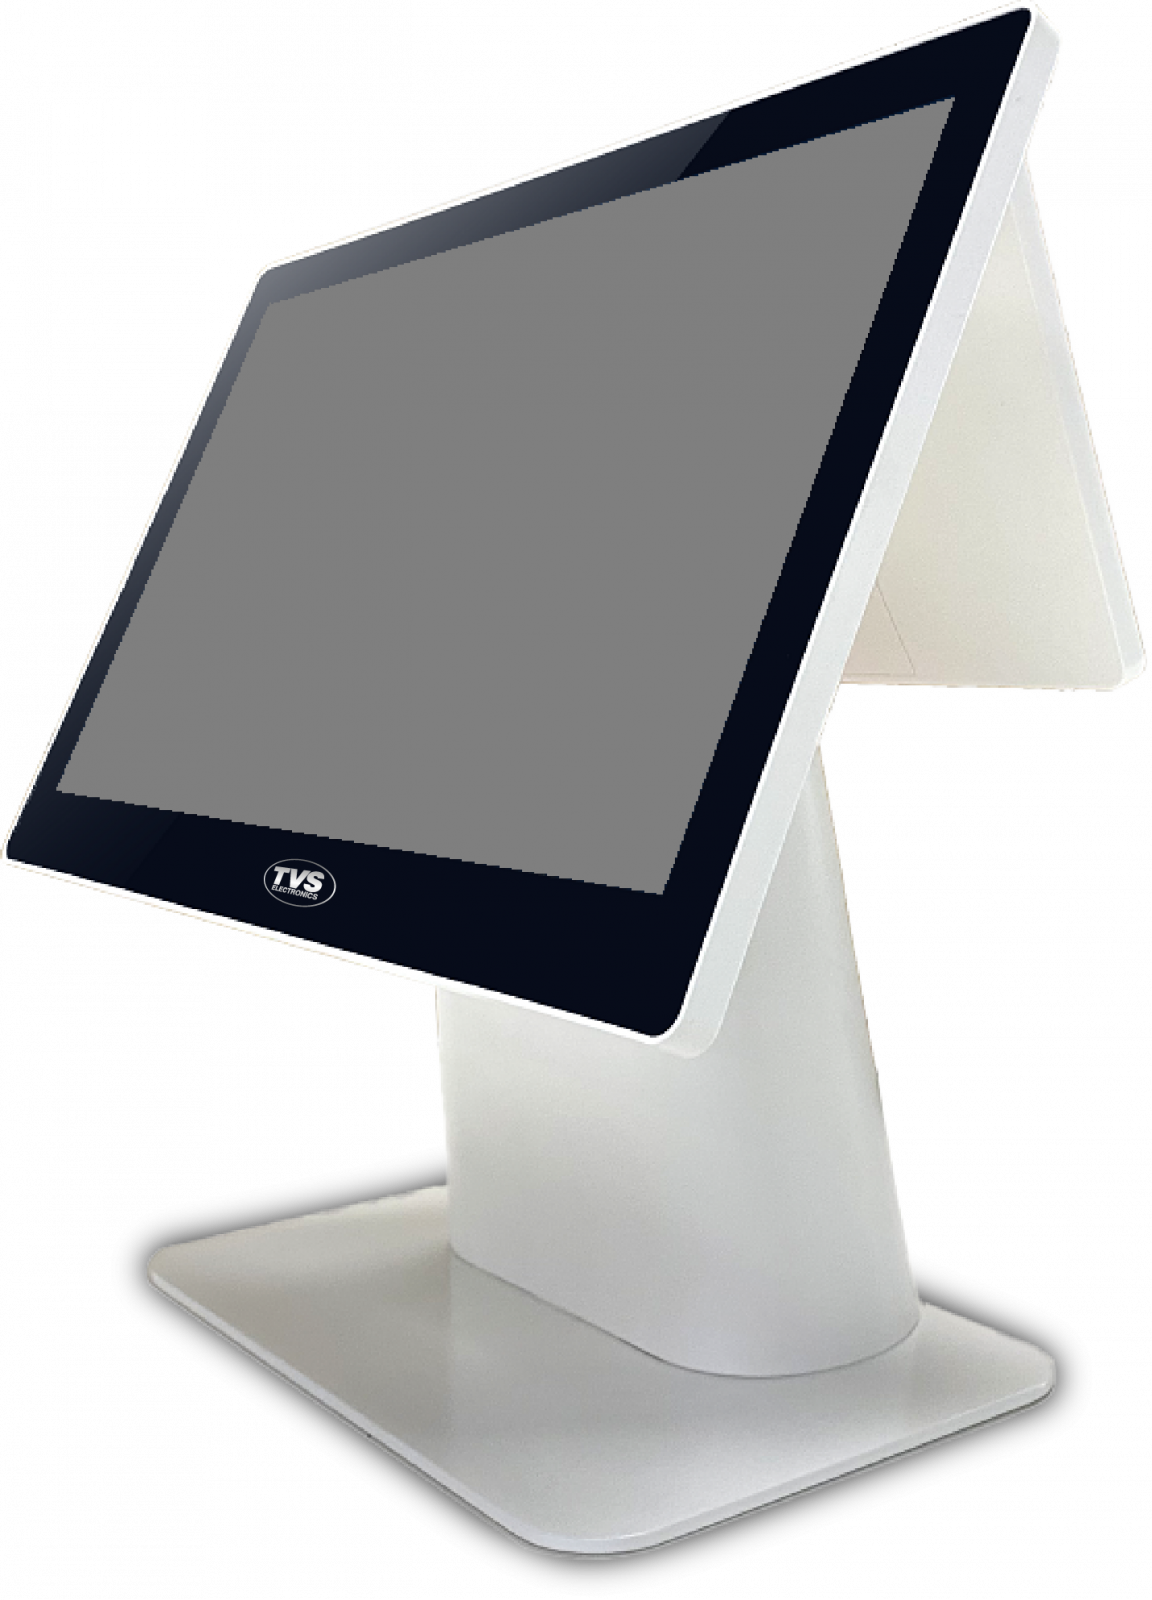 TVSe Touch POS System TP 415CA